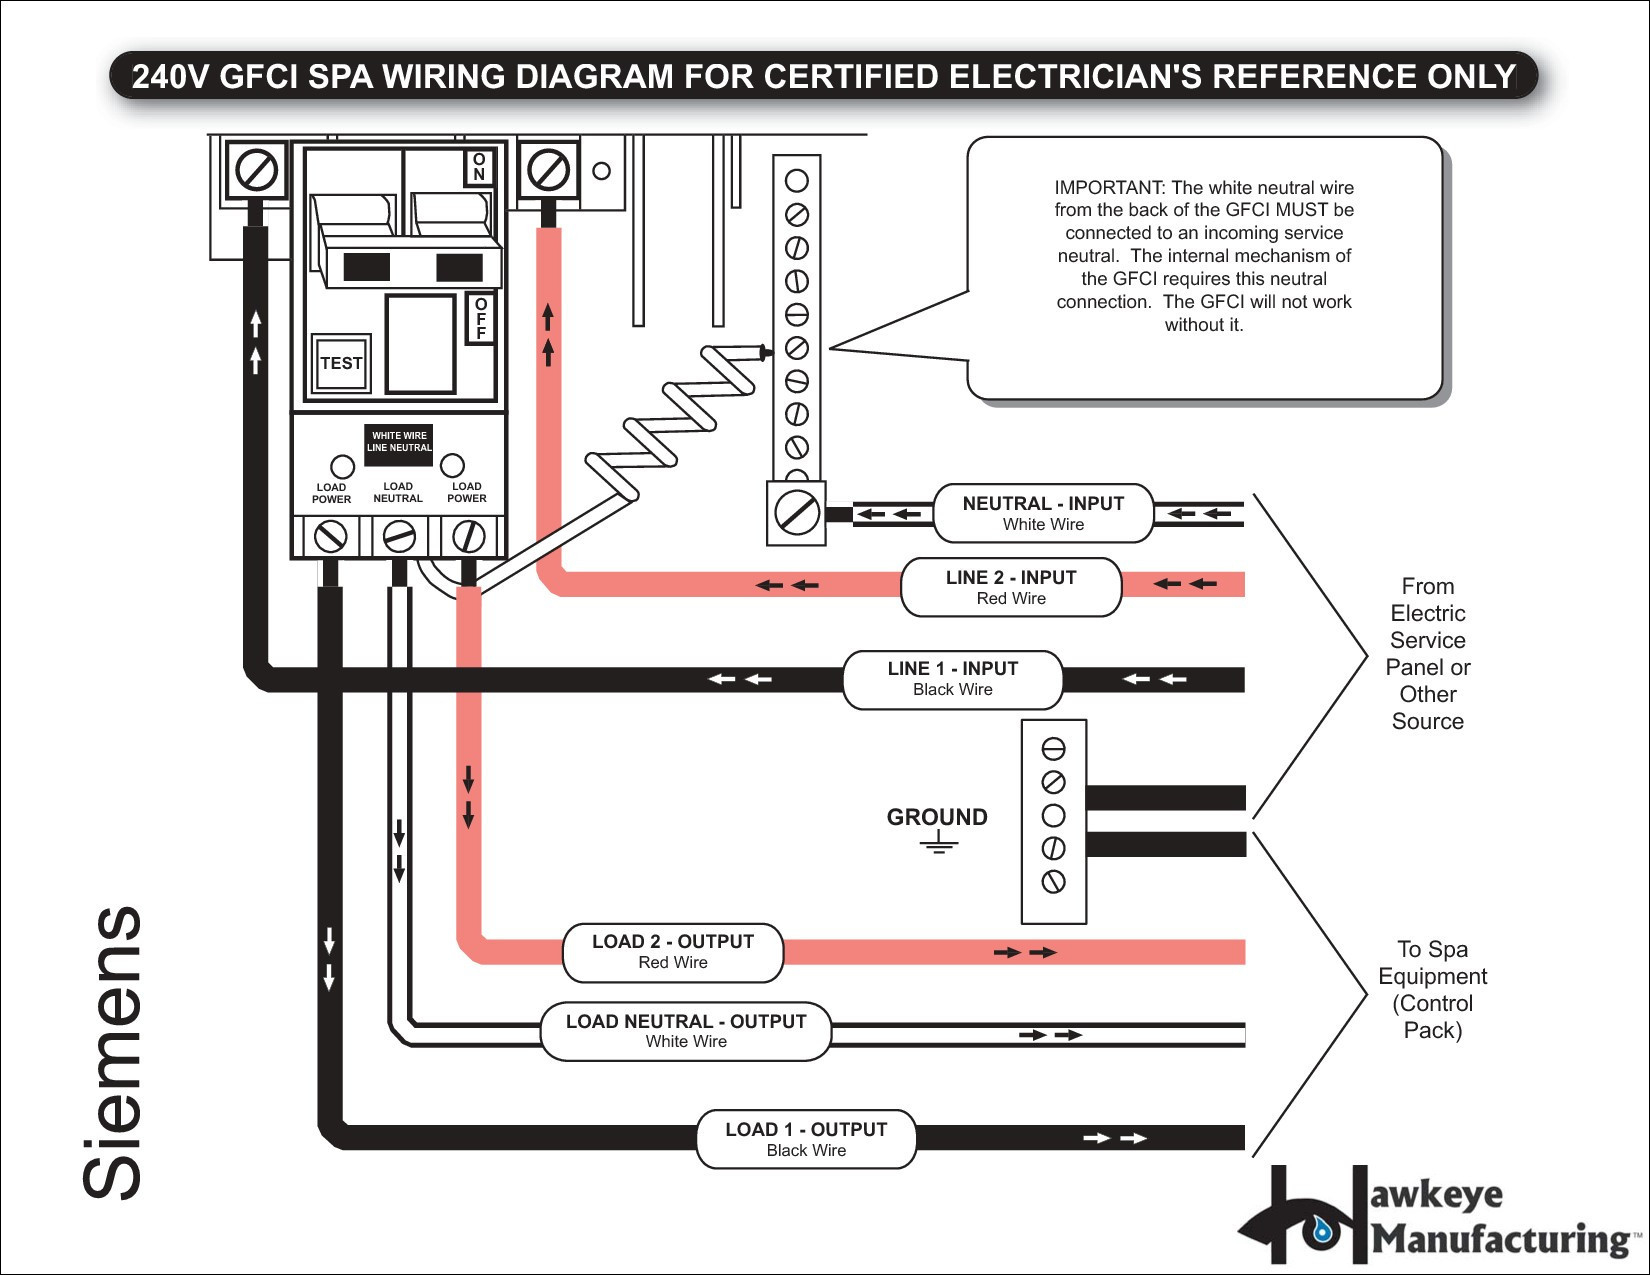 Troubleshooting Gfi Schematic Wiring - Wiring Diagrams Bib on power wiring diagram, motor wiring diagram, 3 wire 220 volt wiring diagram, ansi wiring diagram, amp wiring diagram, electrical wiring diagram, circuit wiring diagram, transformer wiring diagram, arc fault wiring diagram, relays wiring diagram, cooper wiring diagram, metalux wiring diagram, hospital grade wiring diagram, afci wiring diagram, box wiring diagram, ac wiring diagram, switch wiring diagram, outlet wiring diagram, blank wiring diagram, electricity wiring diagram,